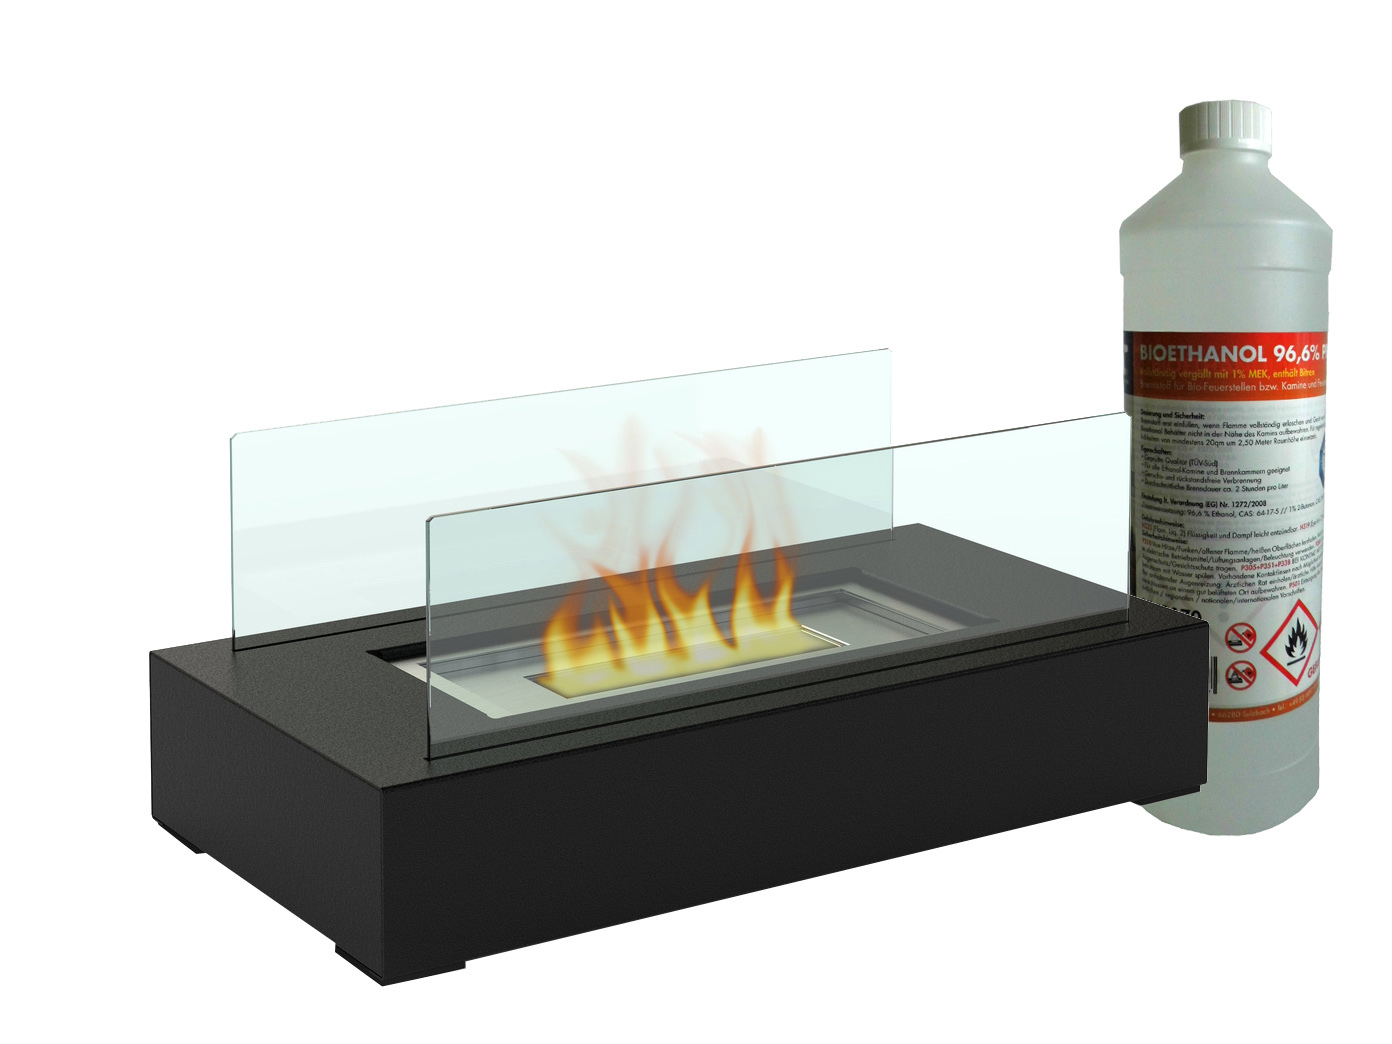 tischkamin mit 1liter bio ethanol tischfeuer glaskamin luxus kamin feuer eur 41 99 picclick de. Black Bedroom Furniture Sets. Home Design Ideas